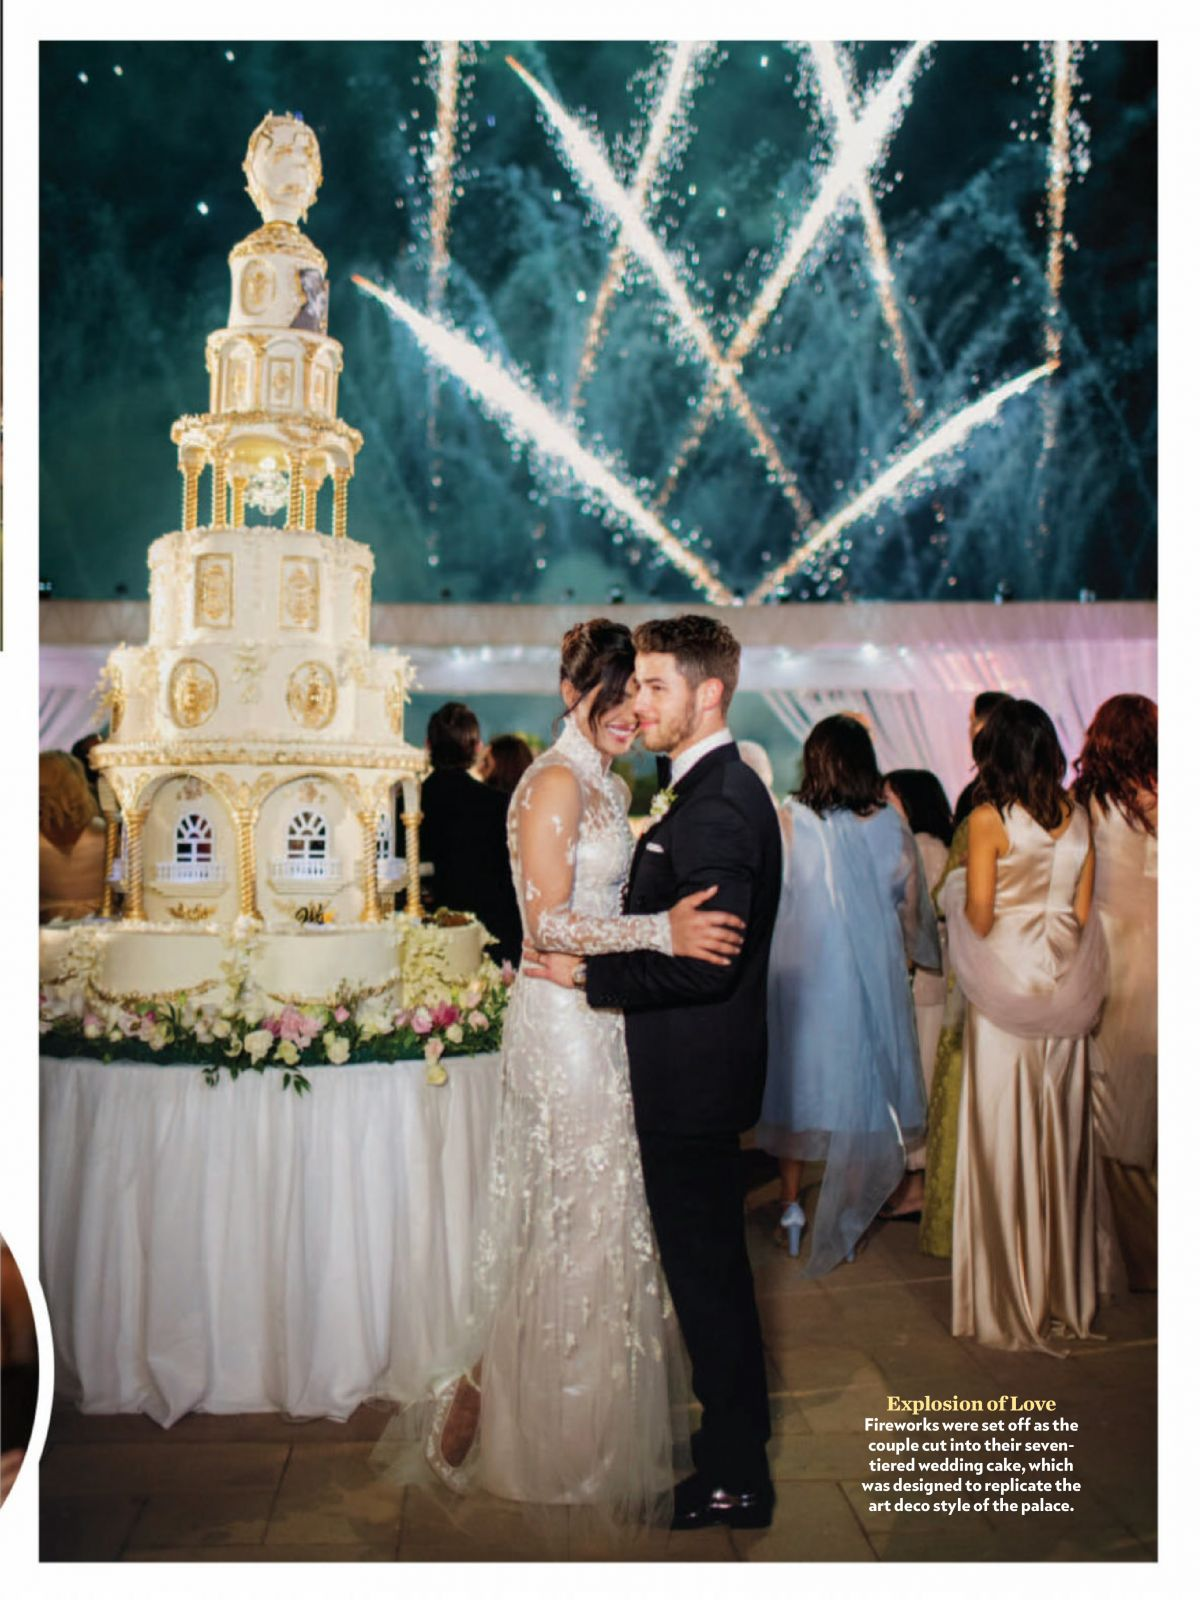 Priyanka Chopra And Nick Jonas Wedding Photos For People Magazine